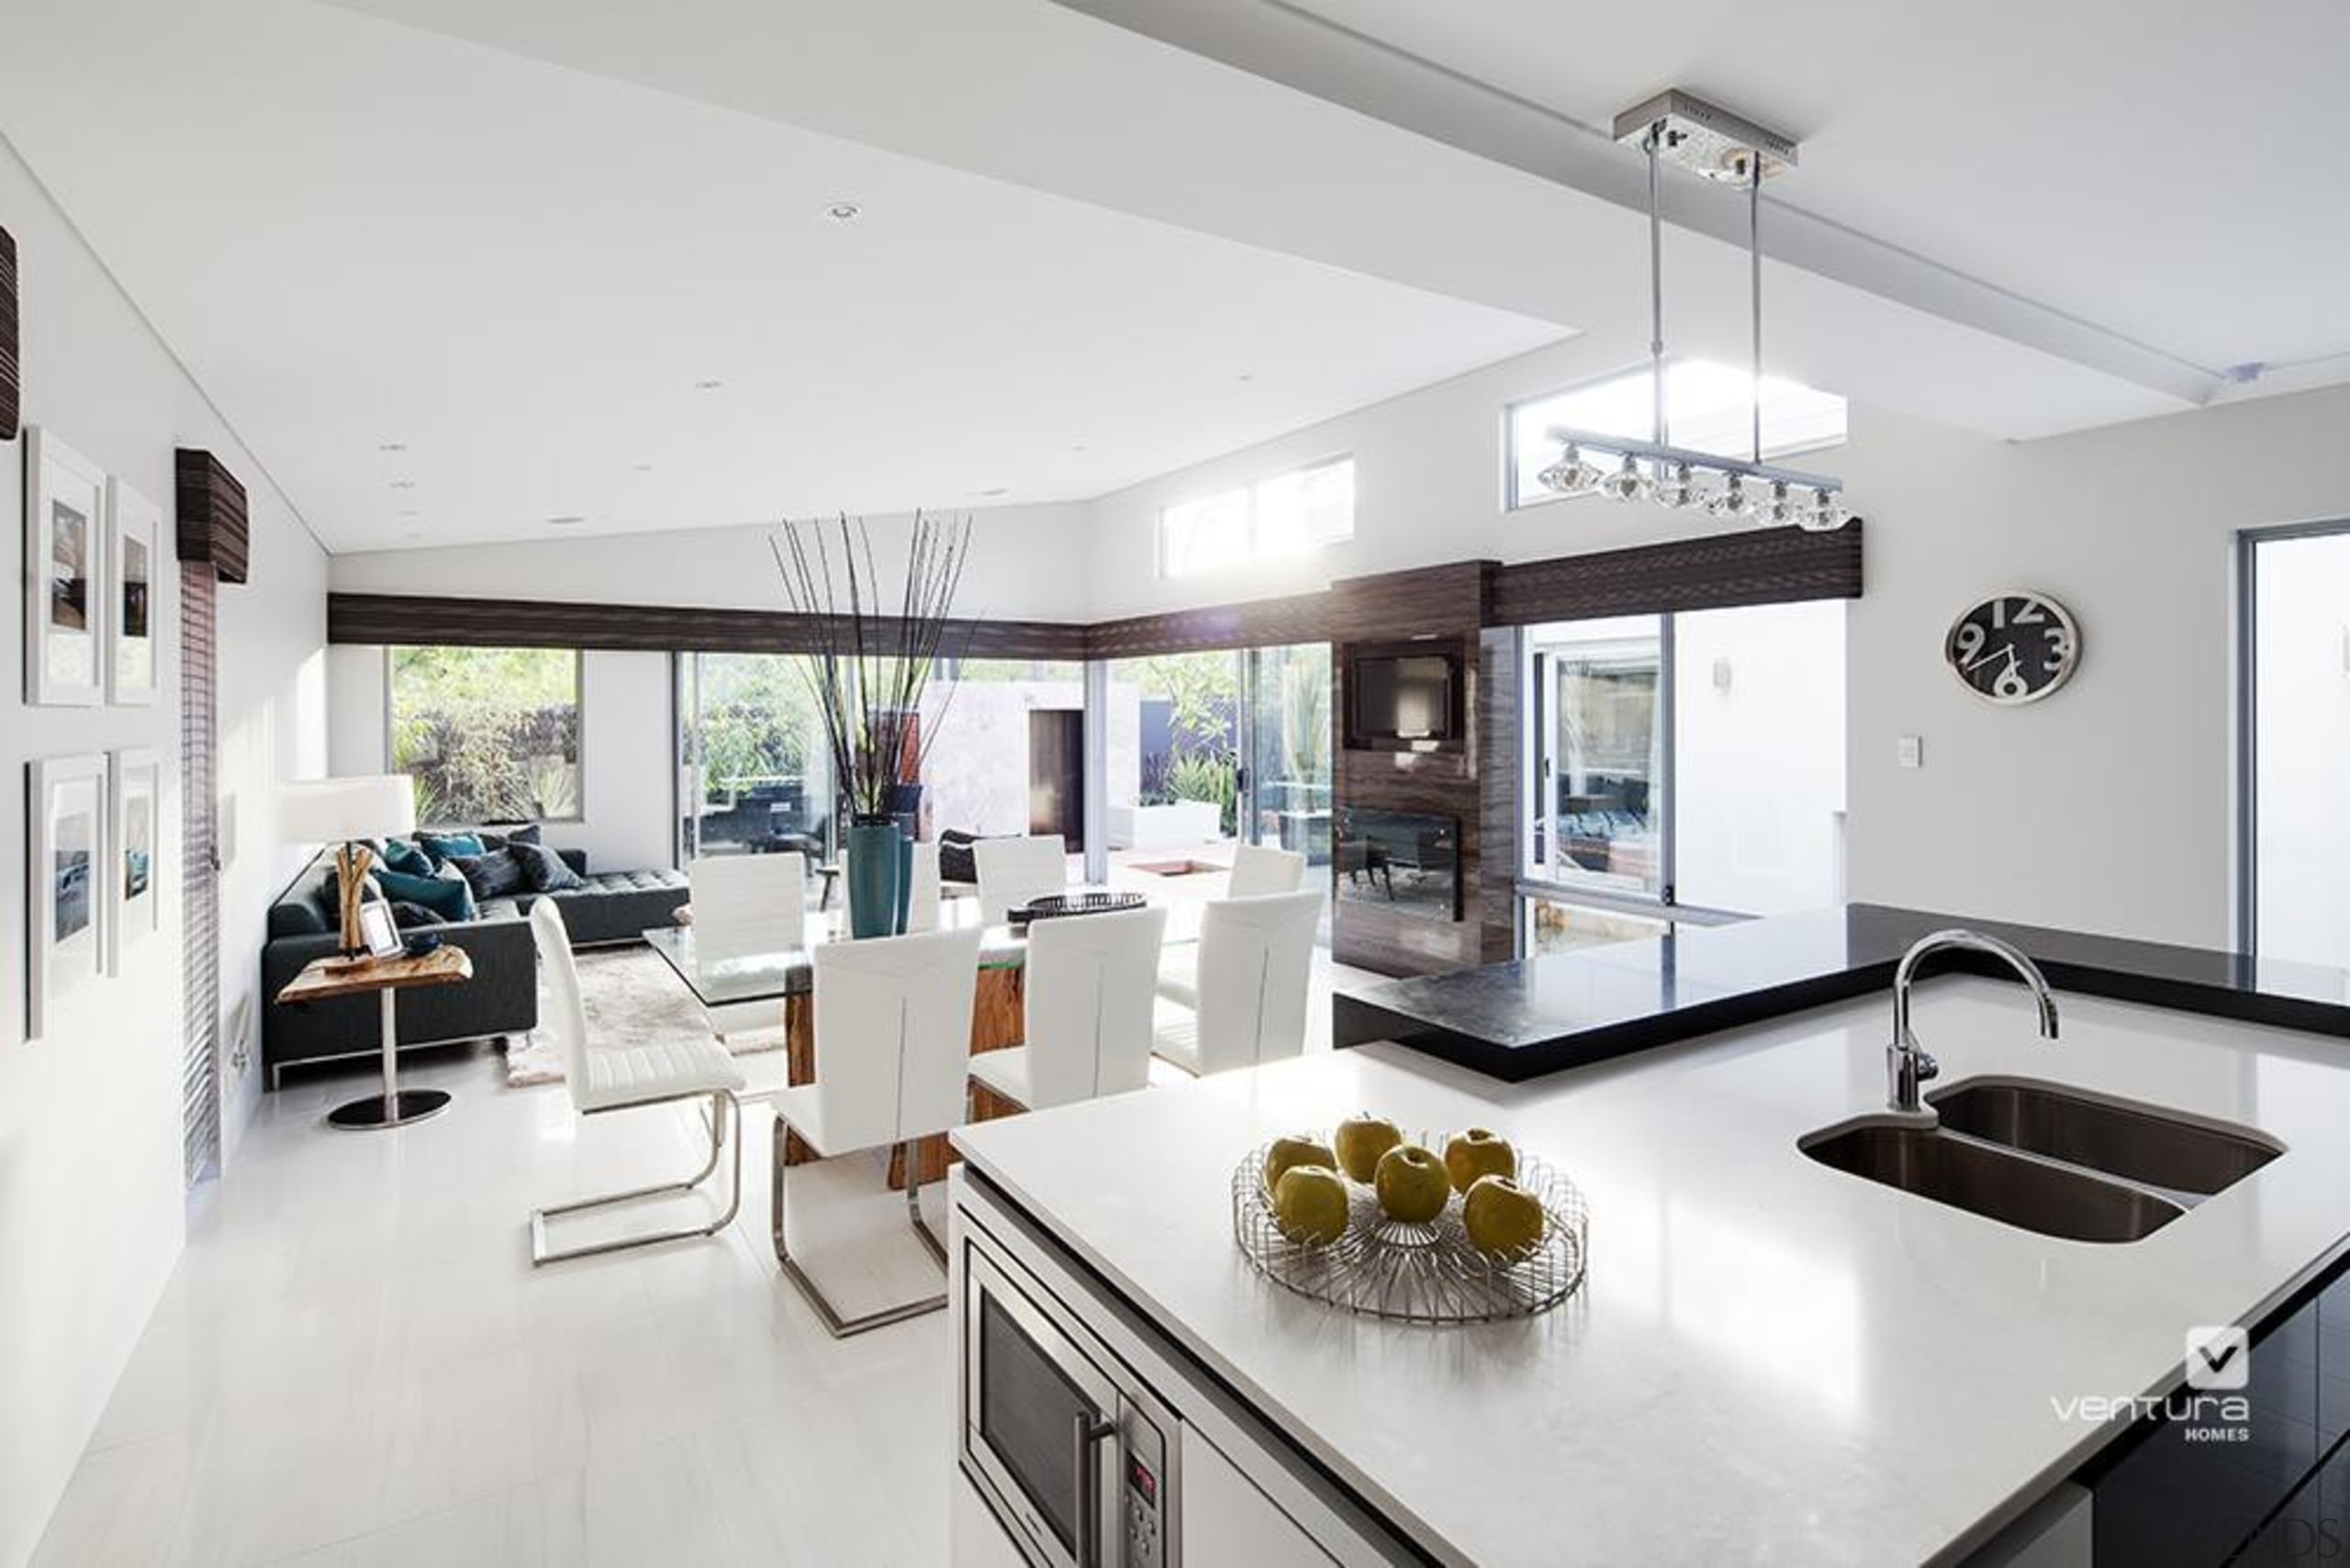 Kitchen design. - The Haven Display Home - house, interior design, living room, property, real estate, white